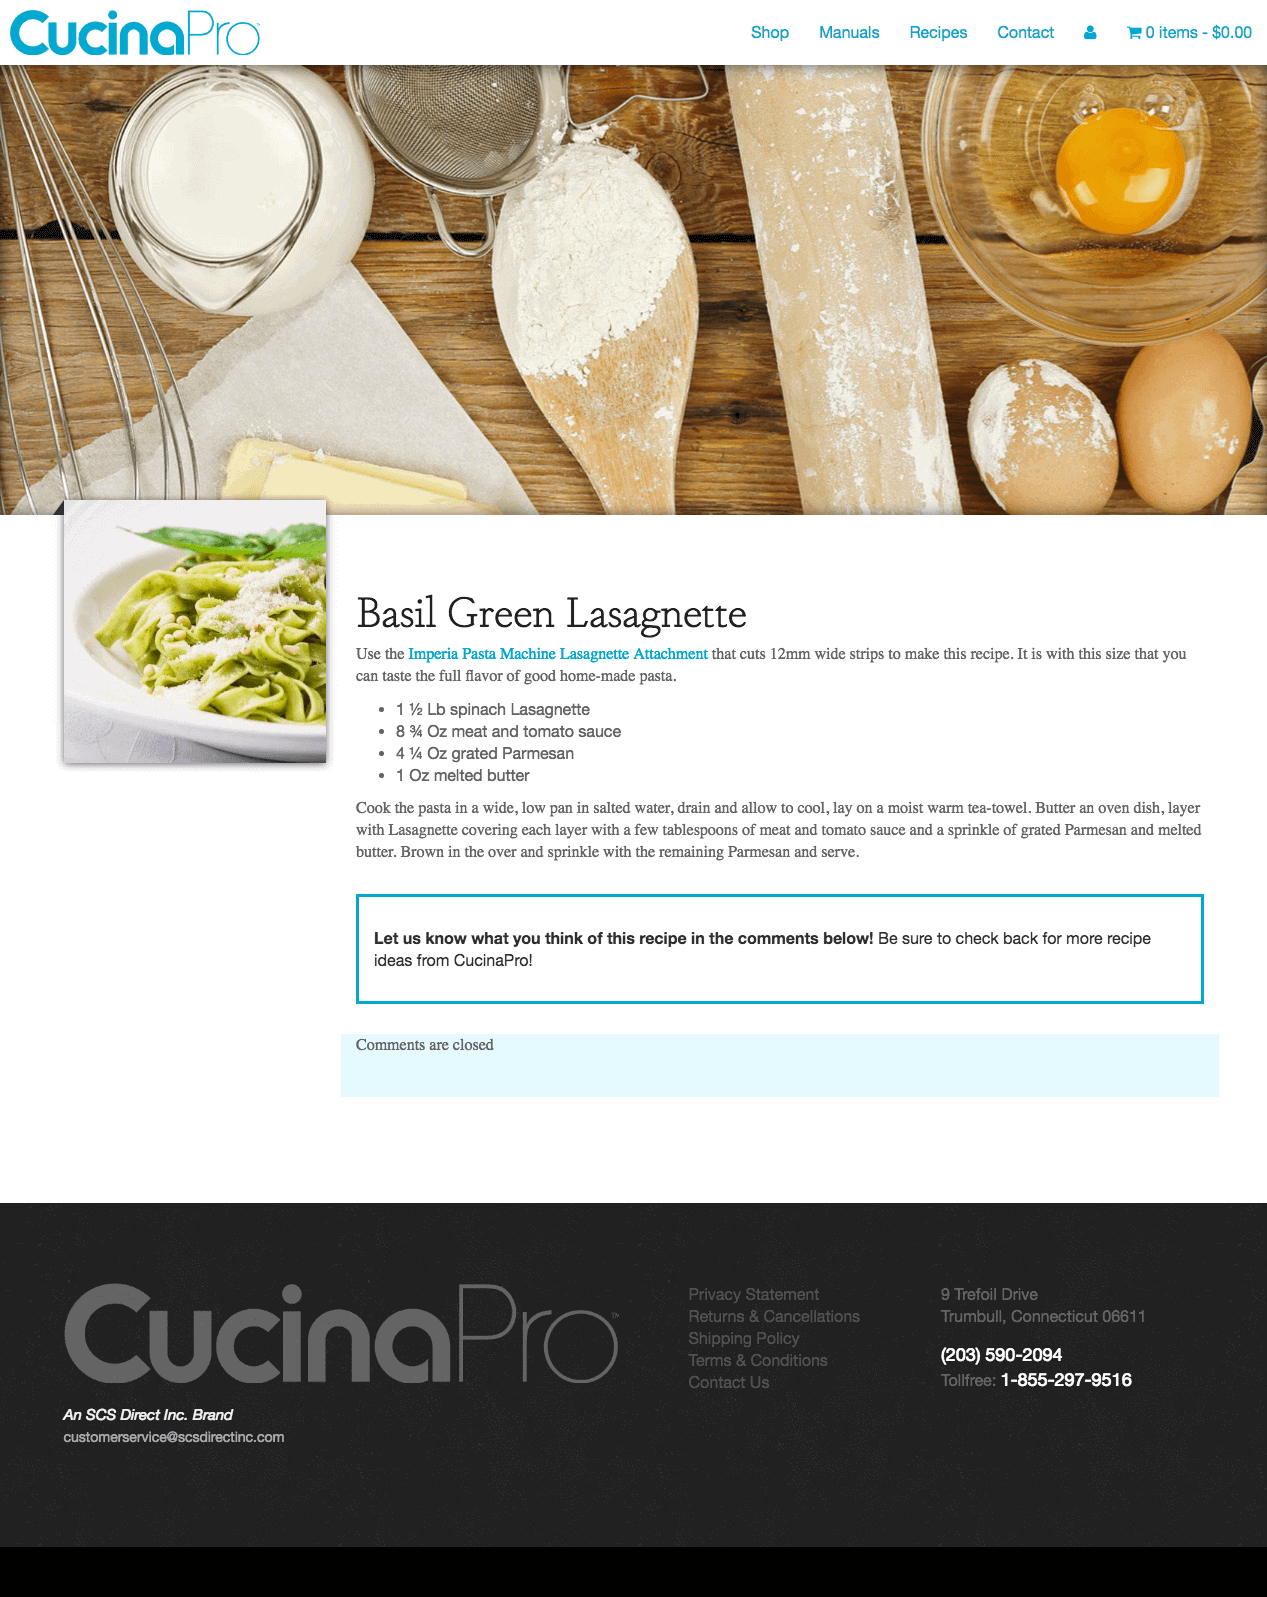 CucinaPro, website design and build by Katie Peterson, Front End Web Developer and Designer at SCS Direct Inc. in New Haven, Connecticut